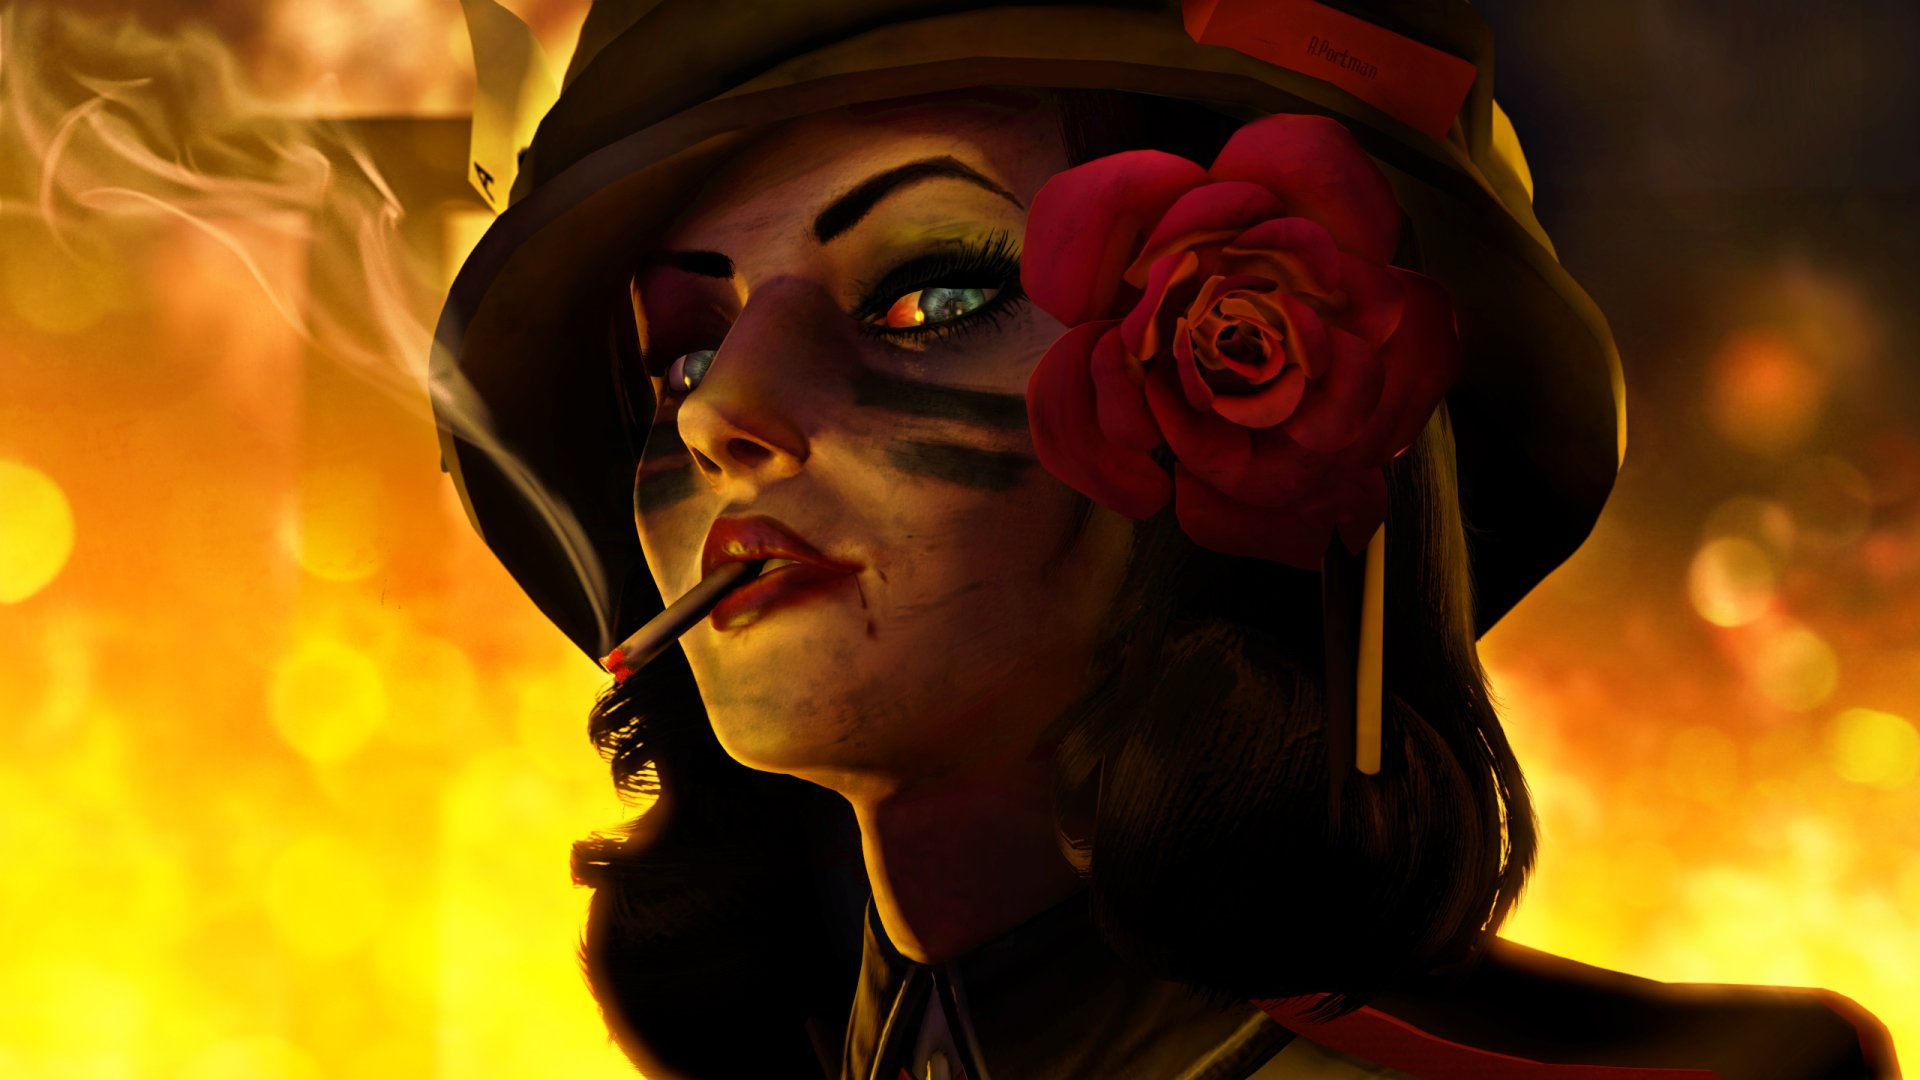 Video Game - Bioshock Infinite  Artistic Painting Elizabeth (Bioshock Infinite) Girl Woman Cigarette Hat Rose Wallpaper